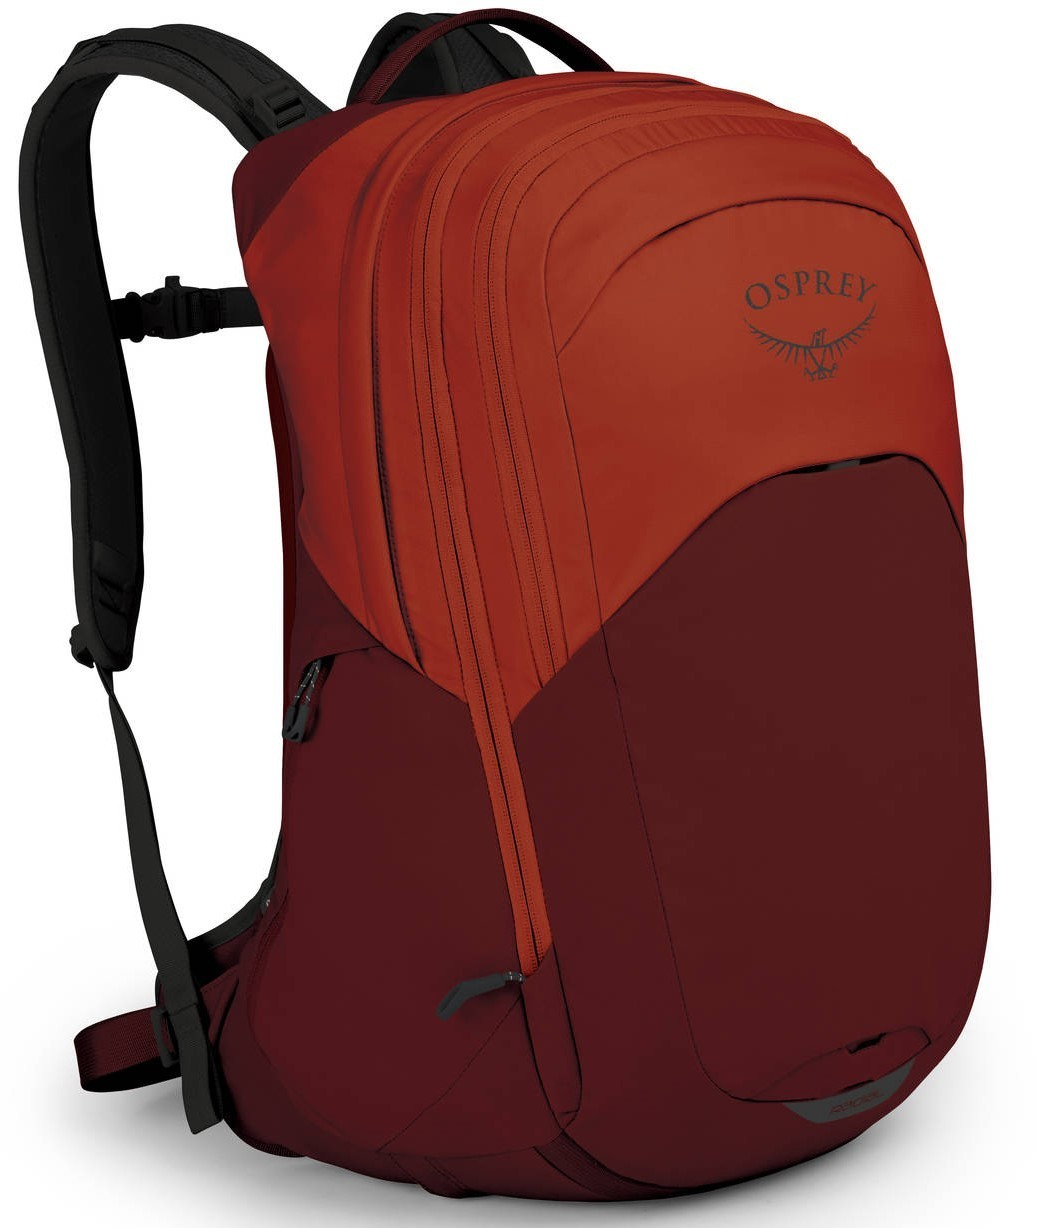 Велорюкзаки Рюкзак Osprey Radial (26-34 литра) Rise/Orange Radial_F19_Side_Rise_Orange_web.jpg